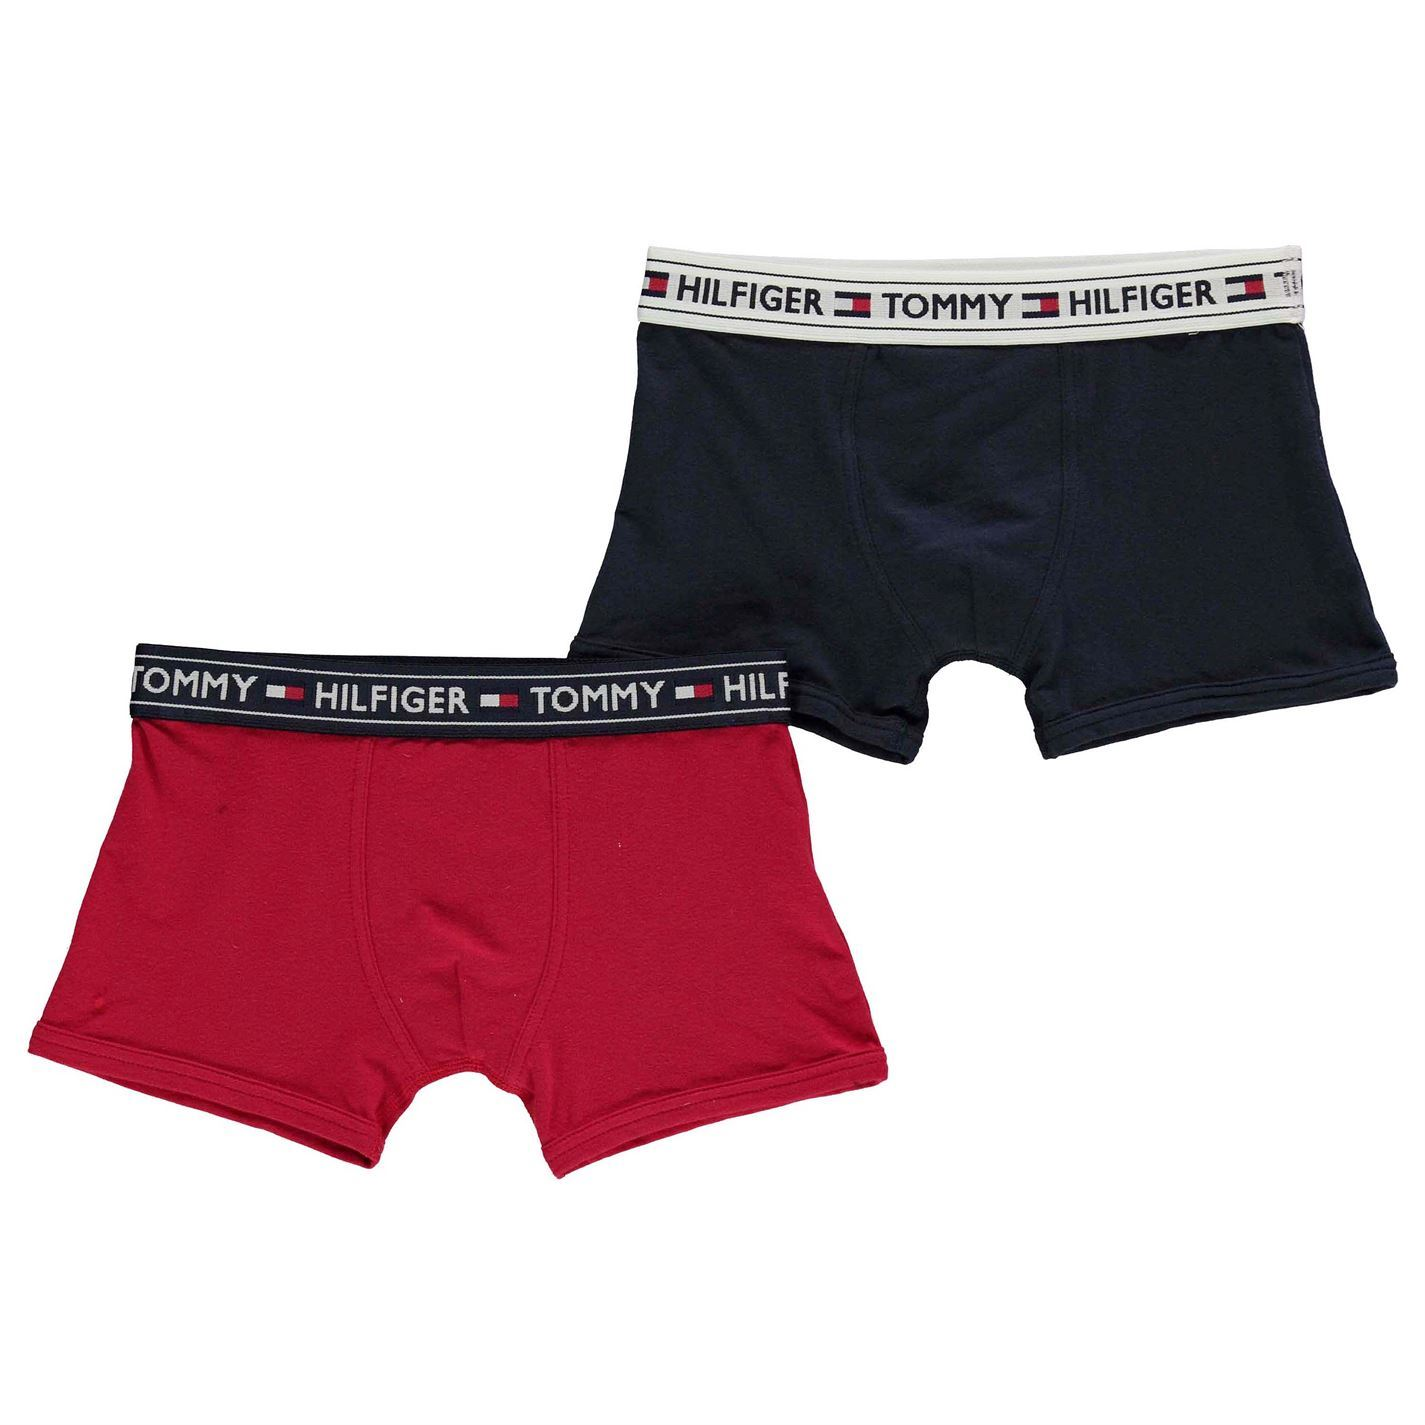 b5e398732e Kids Tommy Hilfiger 2 Pack Trunks Underwear Stretch New | eBay